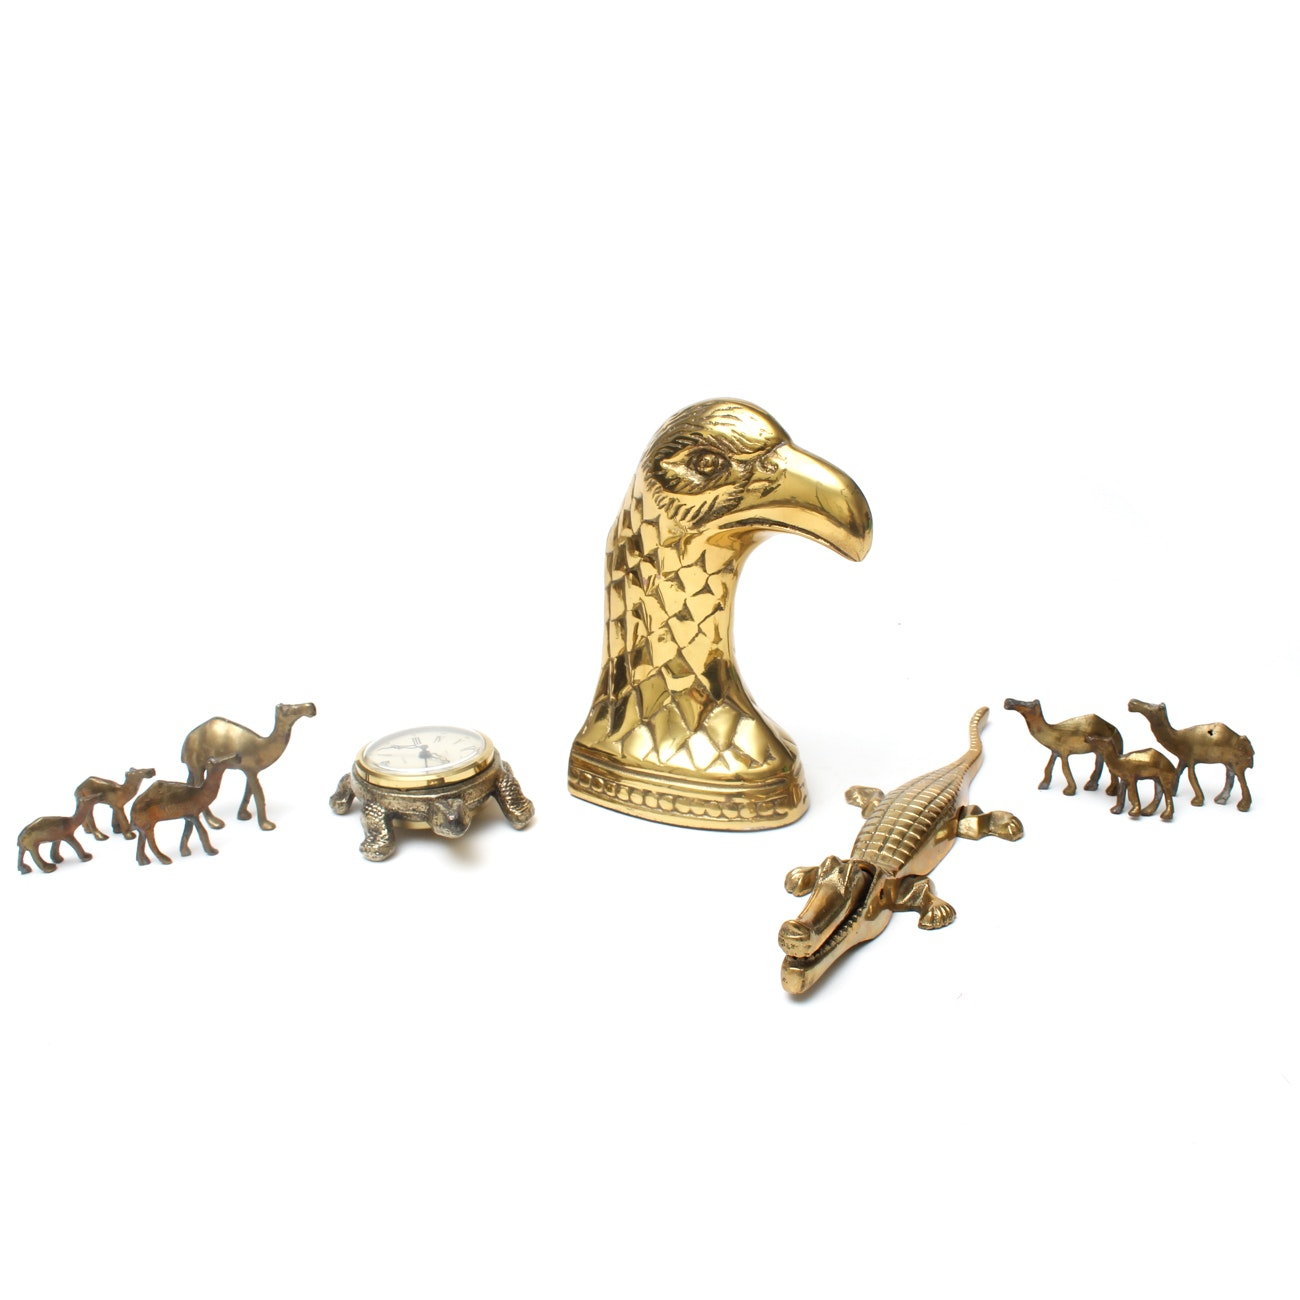 Selection of Brass Animals with West German Table Clock and Nutcracker